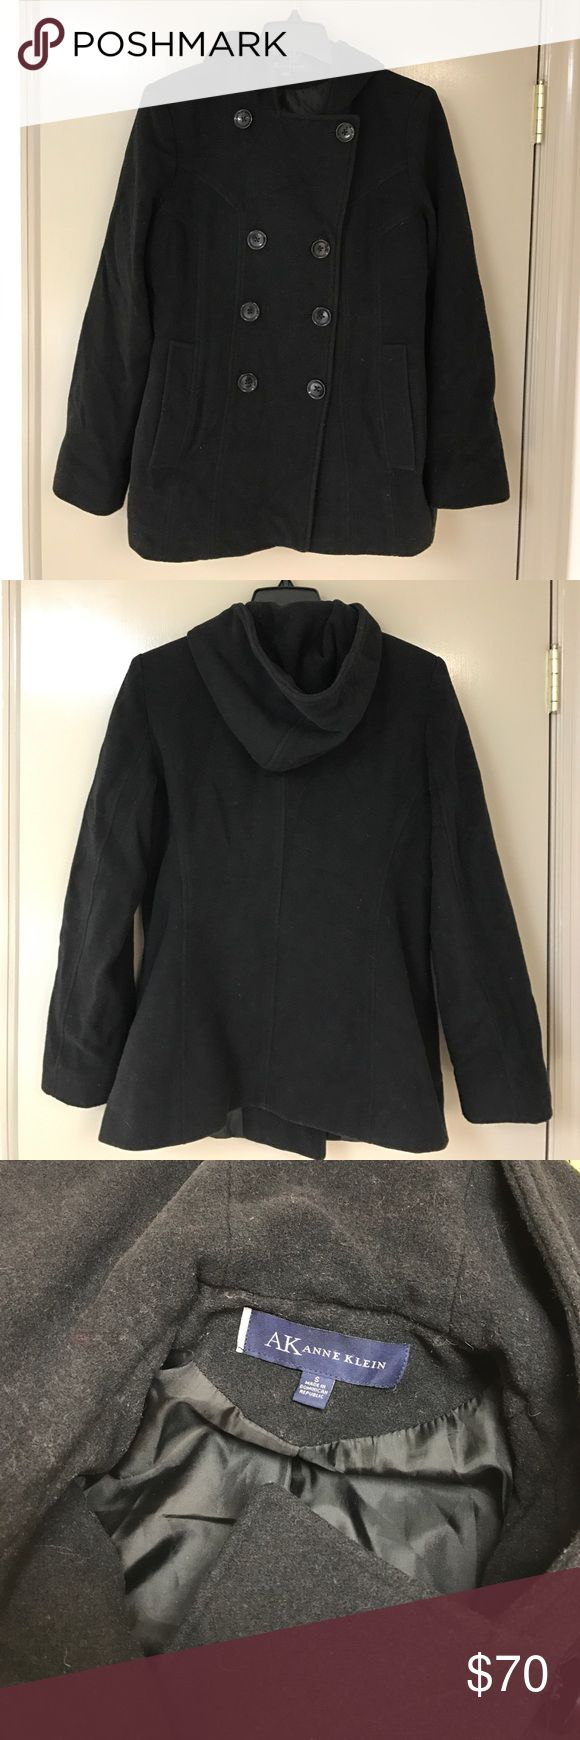 Anne Klein Peacoat 💋 Anne Klein, black Peacoat. EUC, worn only a handful of times. Just have too many things and. I time to wear this. Downsizing closet and everything go 🎀 Anne Klein Jackets & Coats Pea Coats